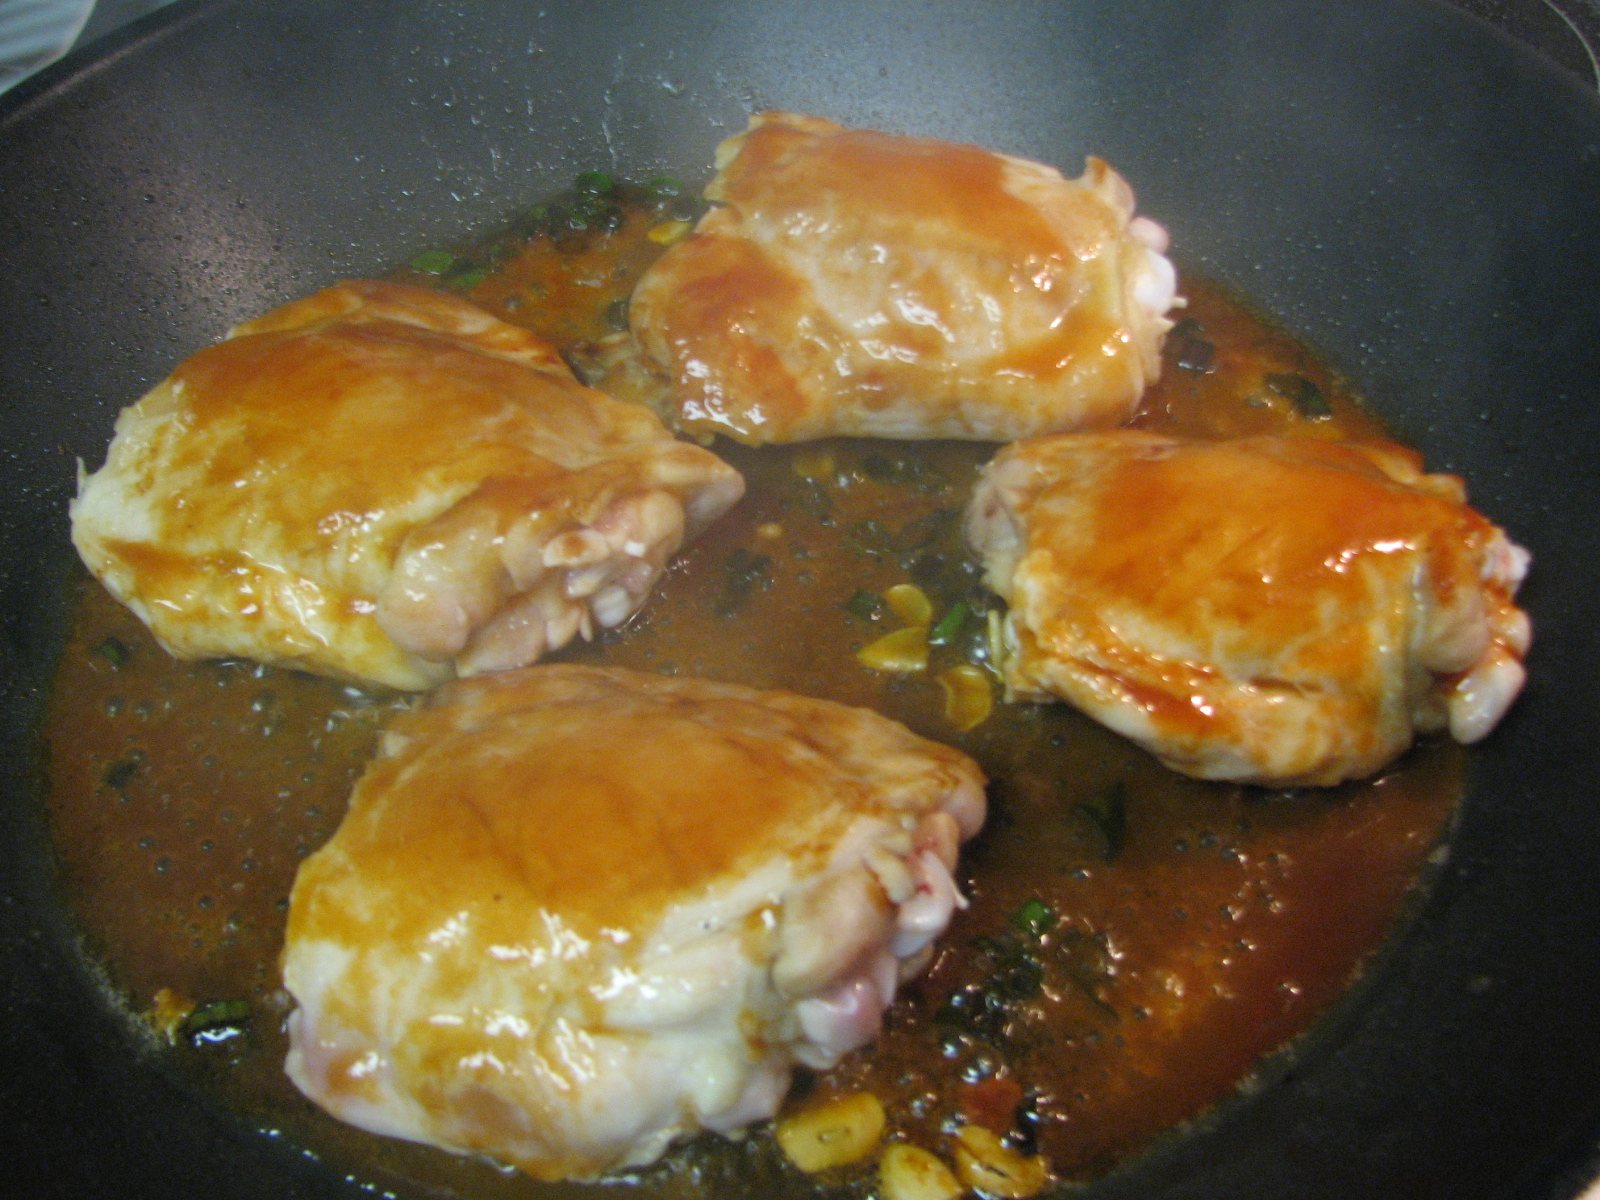 ... Shallots In Red Wine Vinegar (Poulet Au Vinaigre) Recipes — Dishmaps